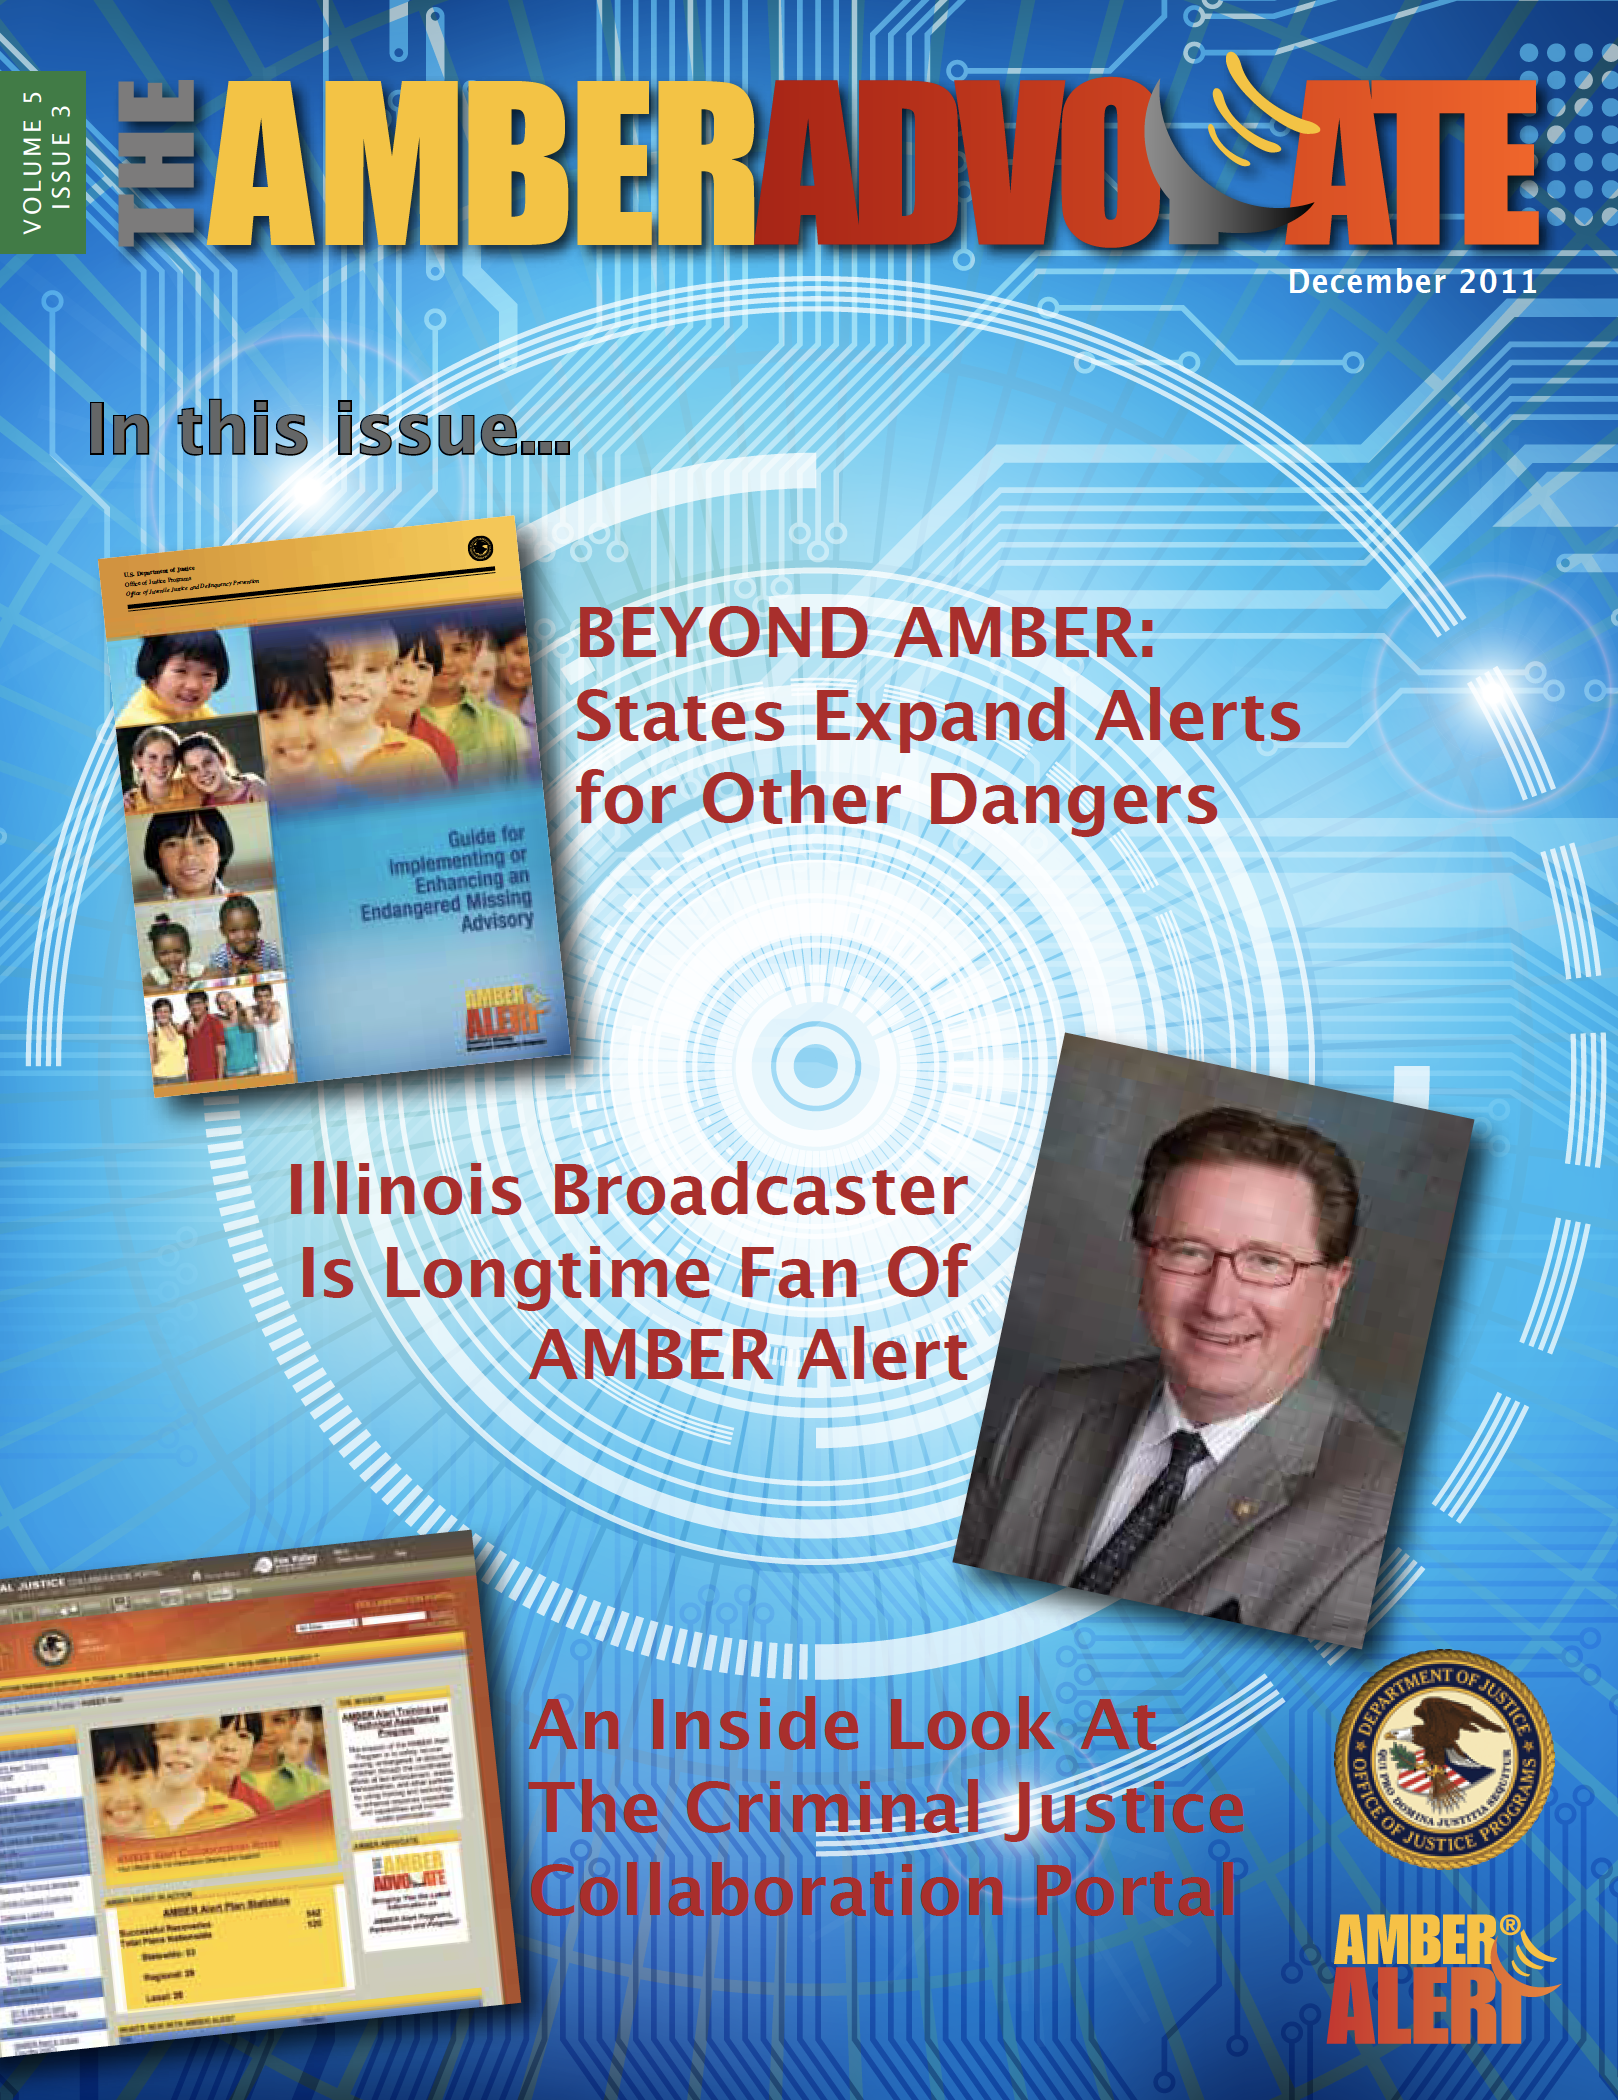 AMBER Advocate 18 cover